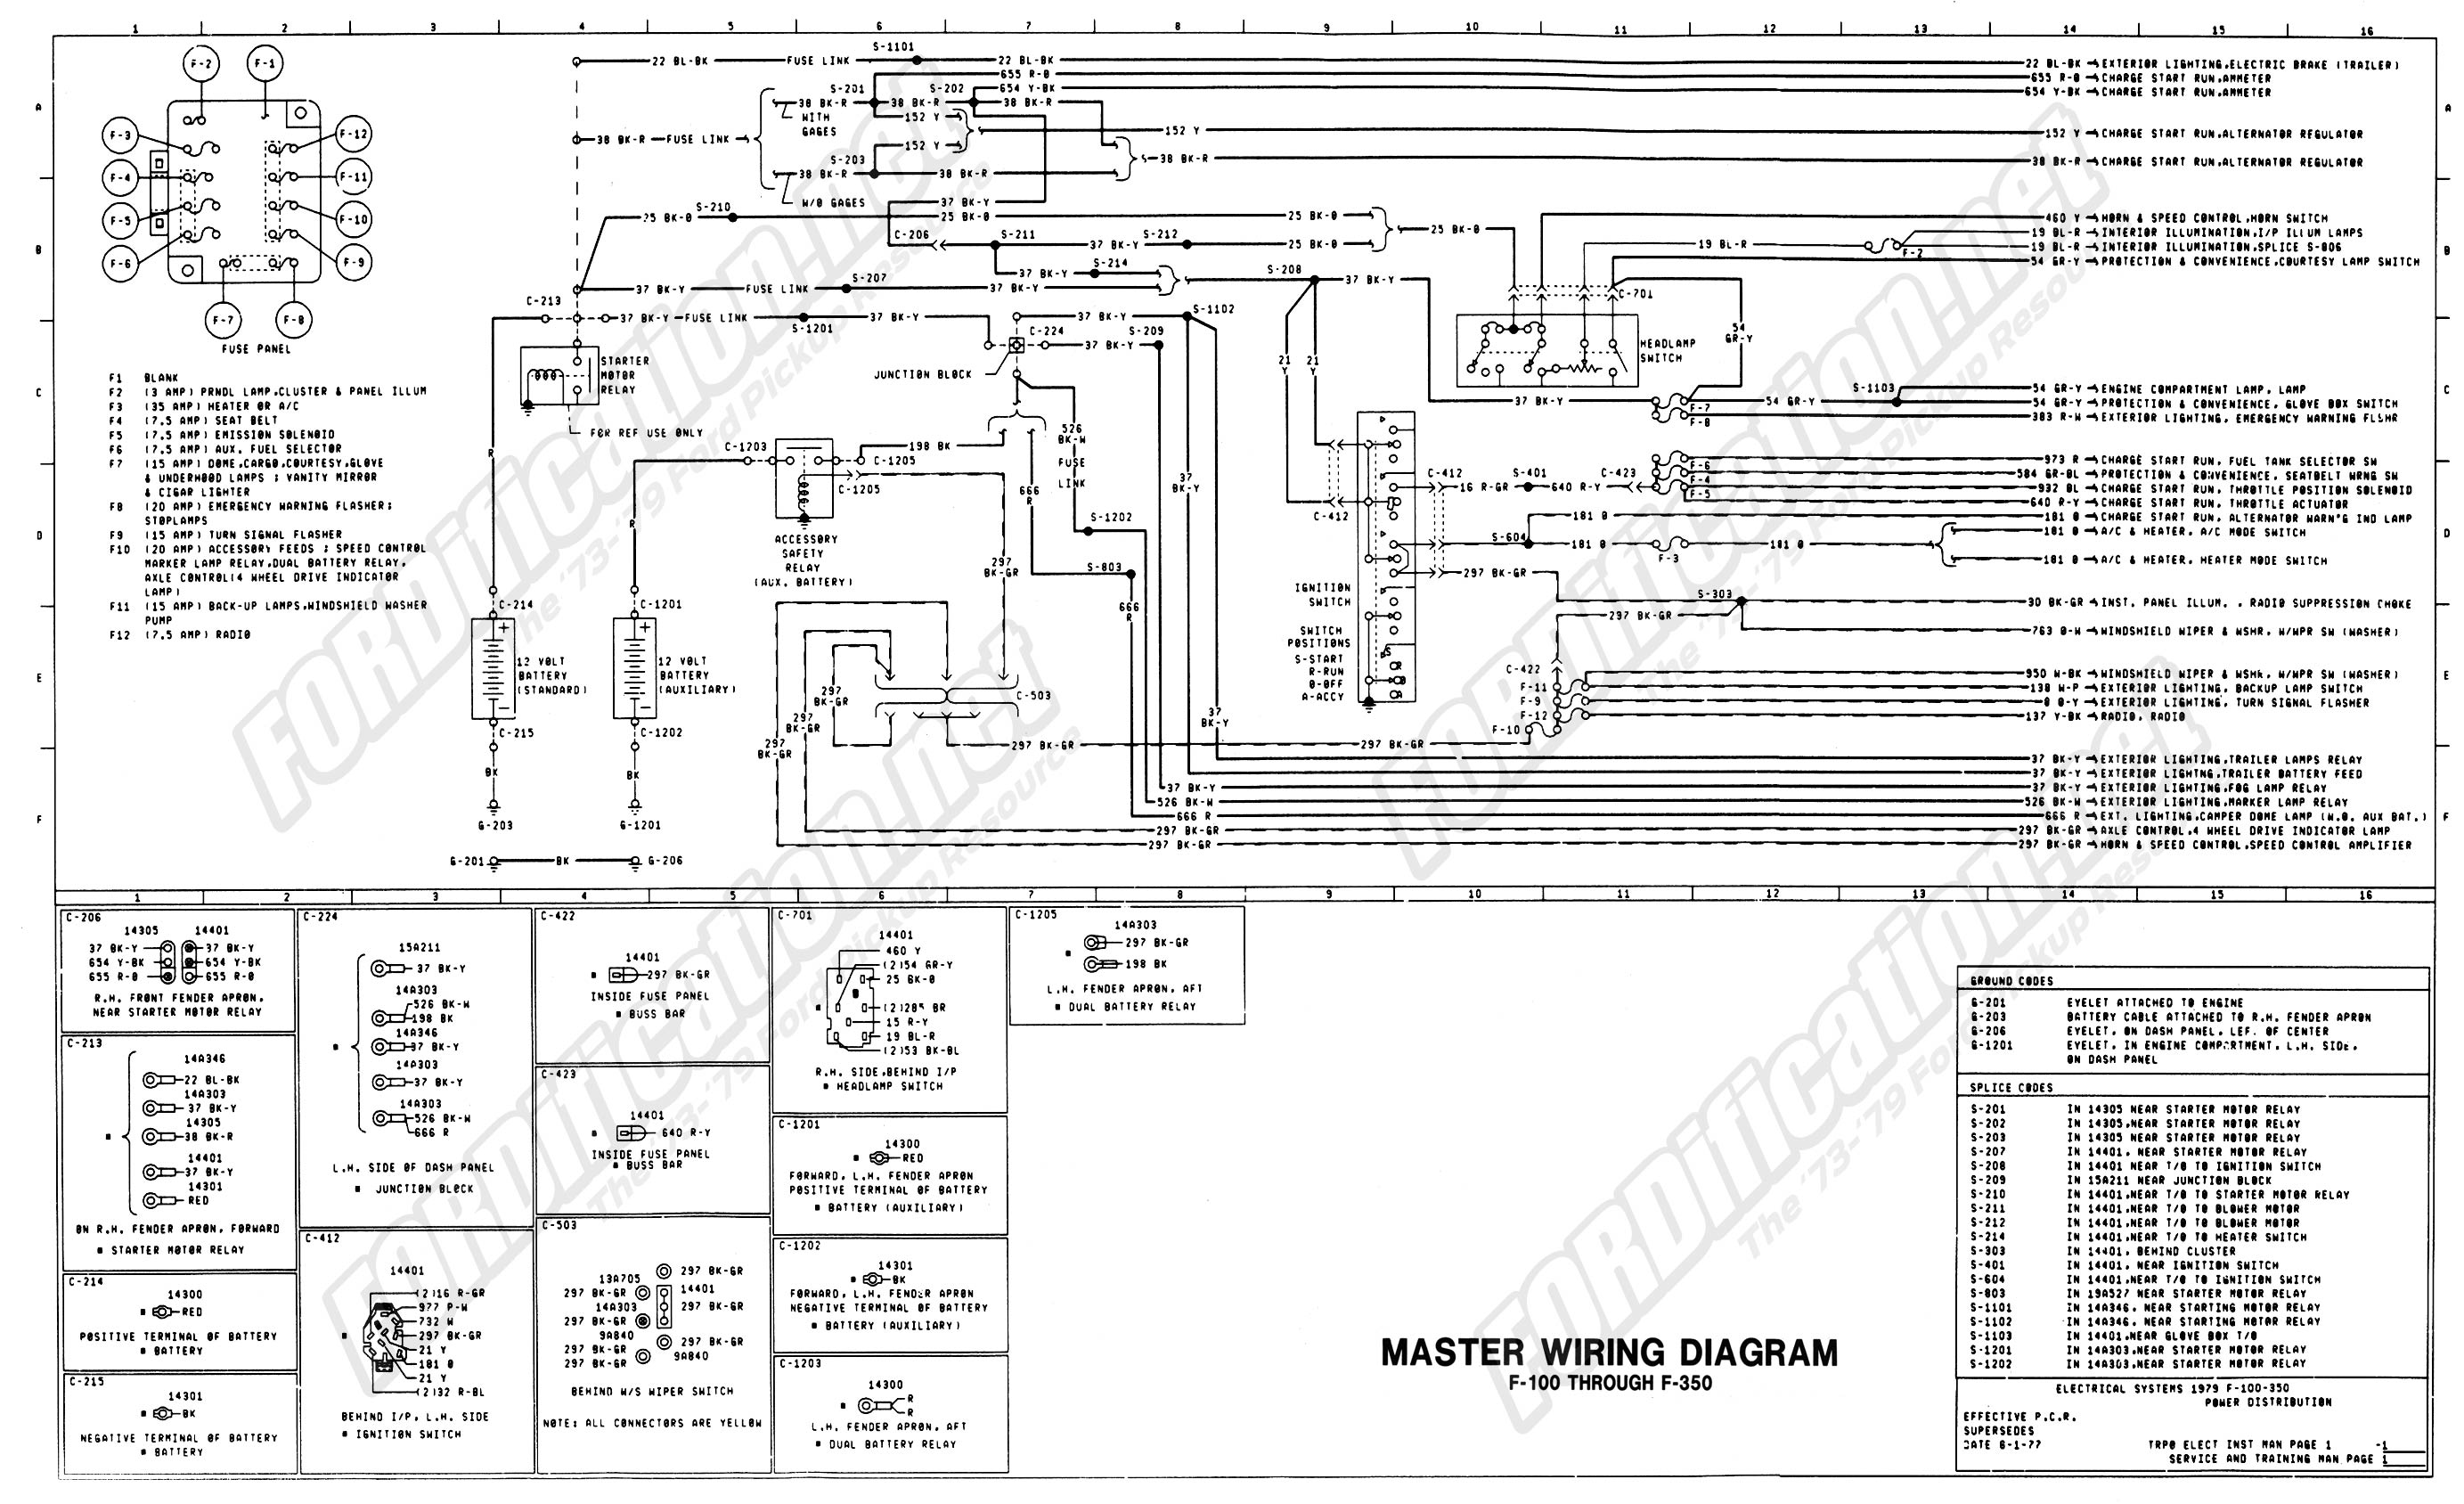 1970 ford torino wiring diagram wiring diagrams u2022 rh autonomia co 71 Ford F100 Wiring Diagram 1967 ford fairlane wiring diagram